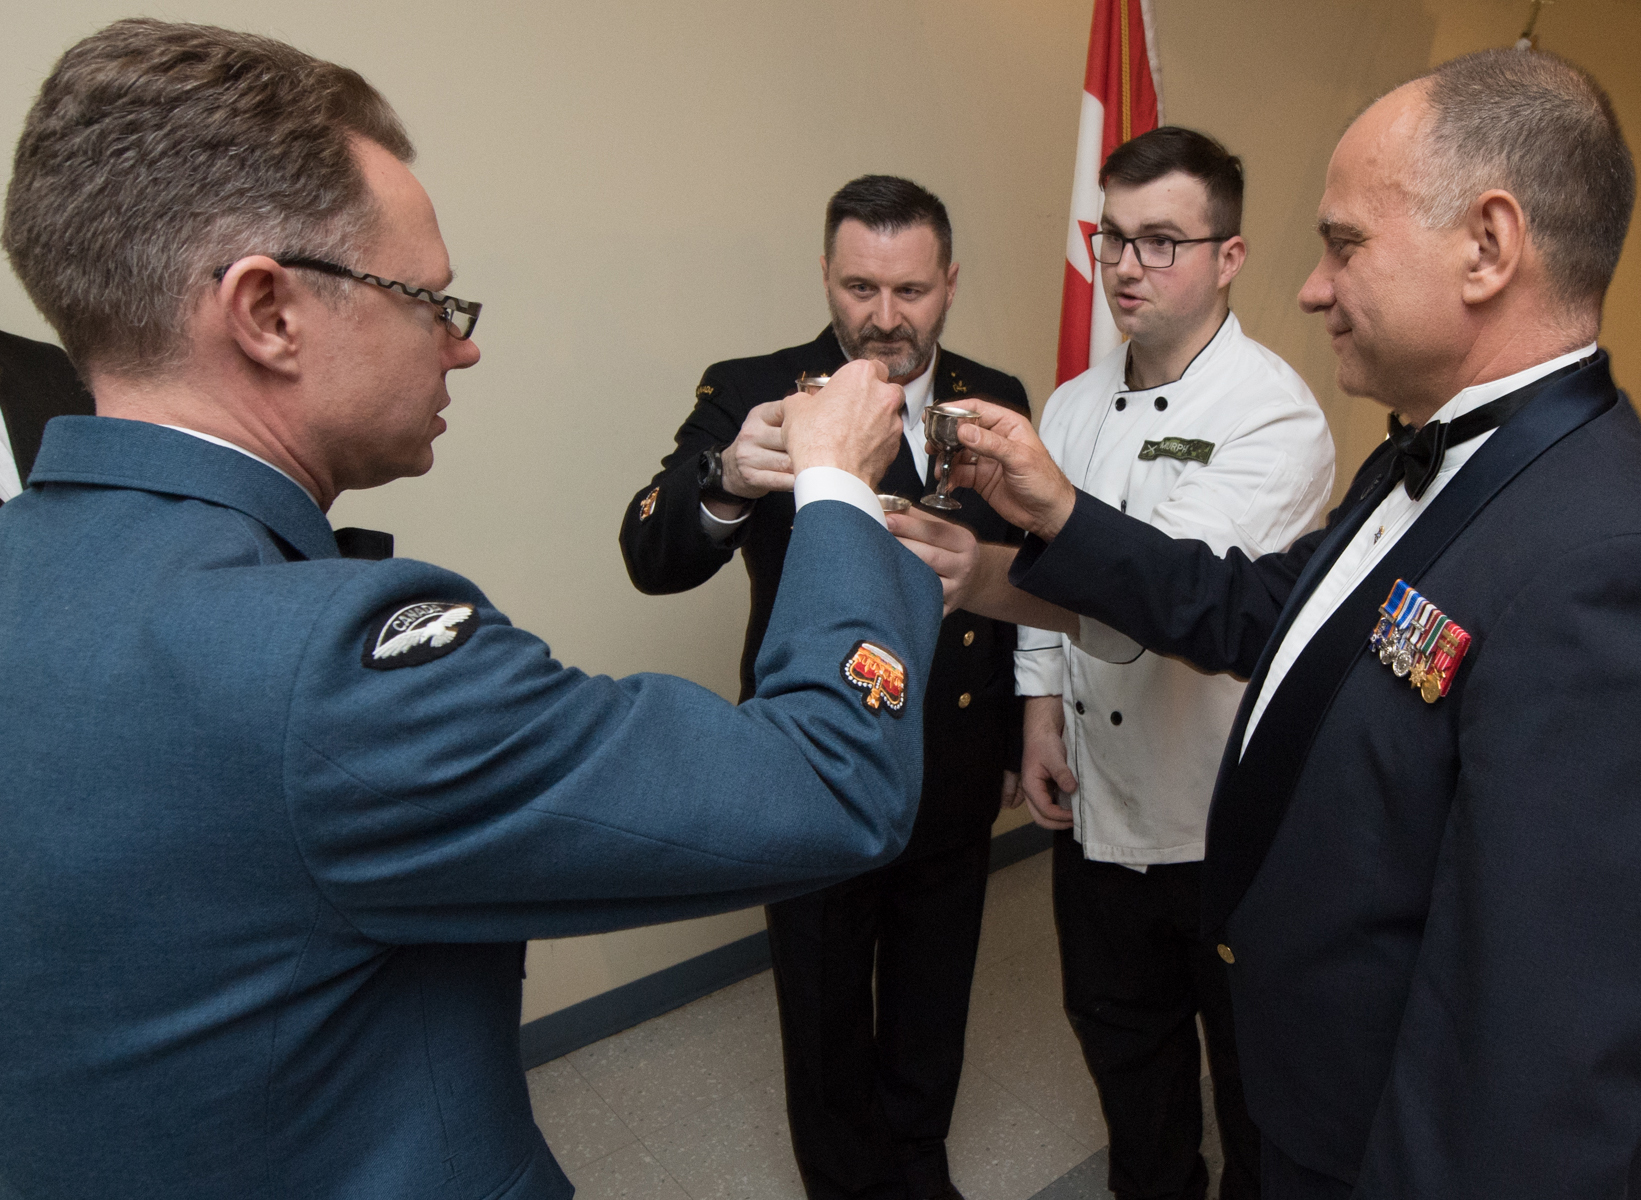 14 Wing Greenwood Wing Chief Warrant Officer Luc Emond (right) toasts with the mess dinner staff—Warrant Officer Jeff Campbell (left), Petty Officer 1st Class Rod Belanger (left centre) and Private Justin Murphy—at 14 Wing's mess dinner on March 28, 2018. PHOTO: Leading Seaman Louis-Philippe Dubé, GD01-2018-0129-043